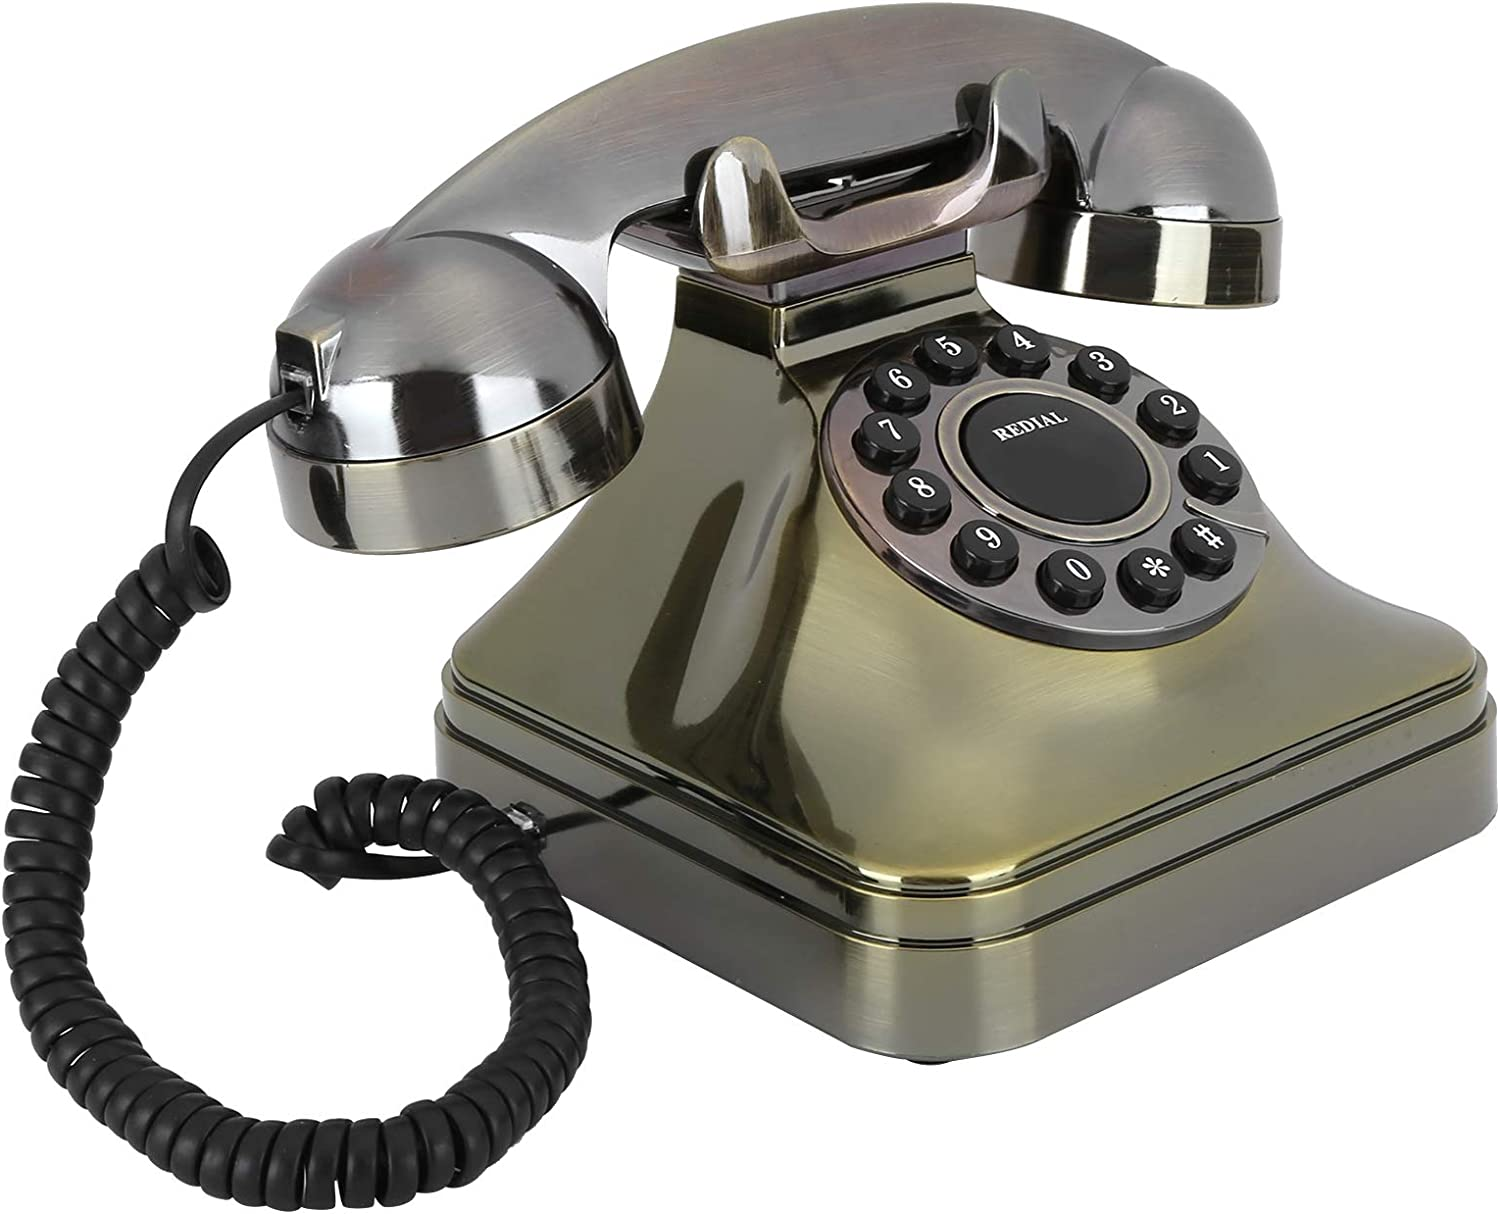 Garsentx Old-fashioned roulette landline phone Antique Bronze Telephone Vintage modelling antique style Portable Home Decoration Telephone Gift for an old man